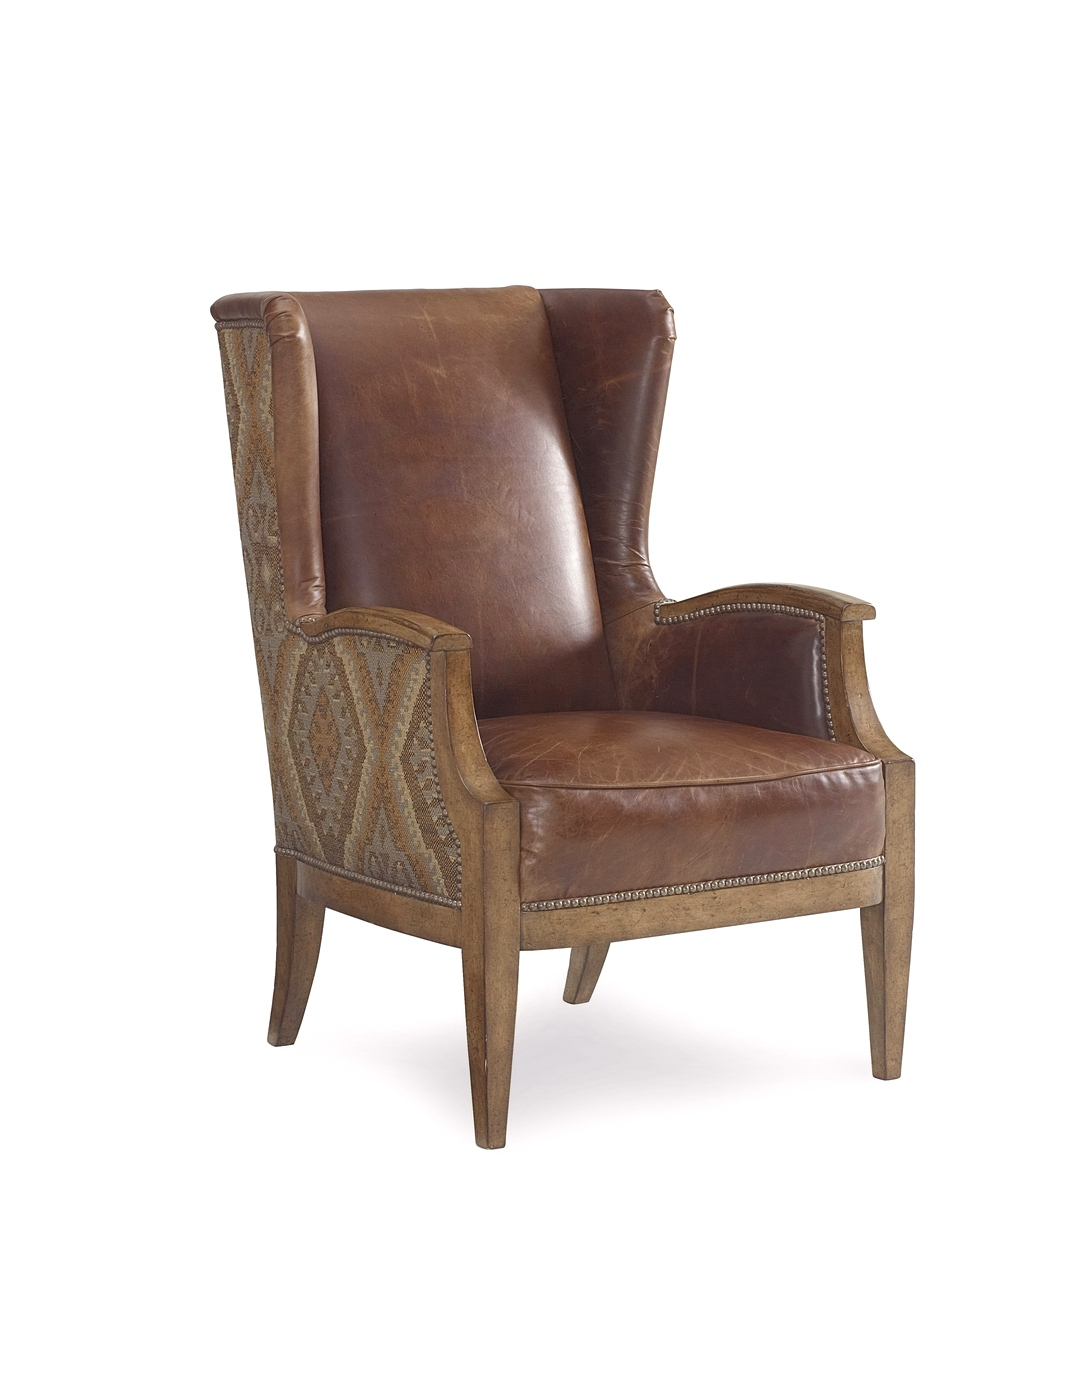 Aztec Chair The Foundry Antique Brown Aztec Wingback Chair With Nail